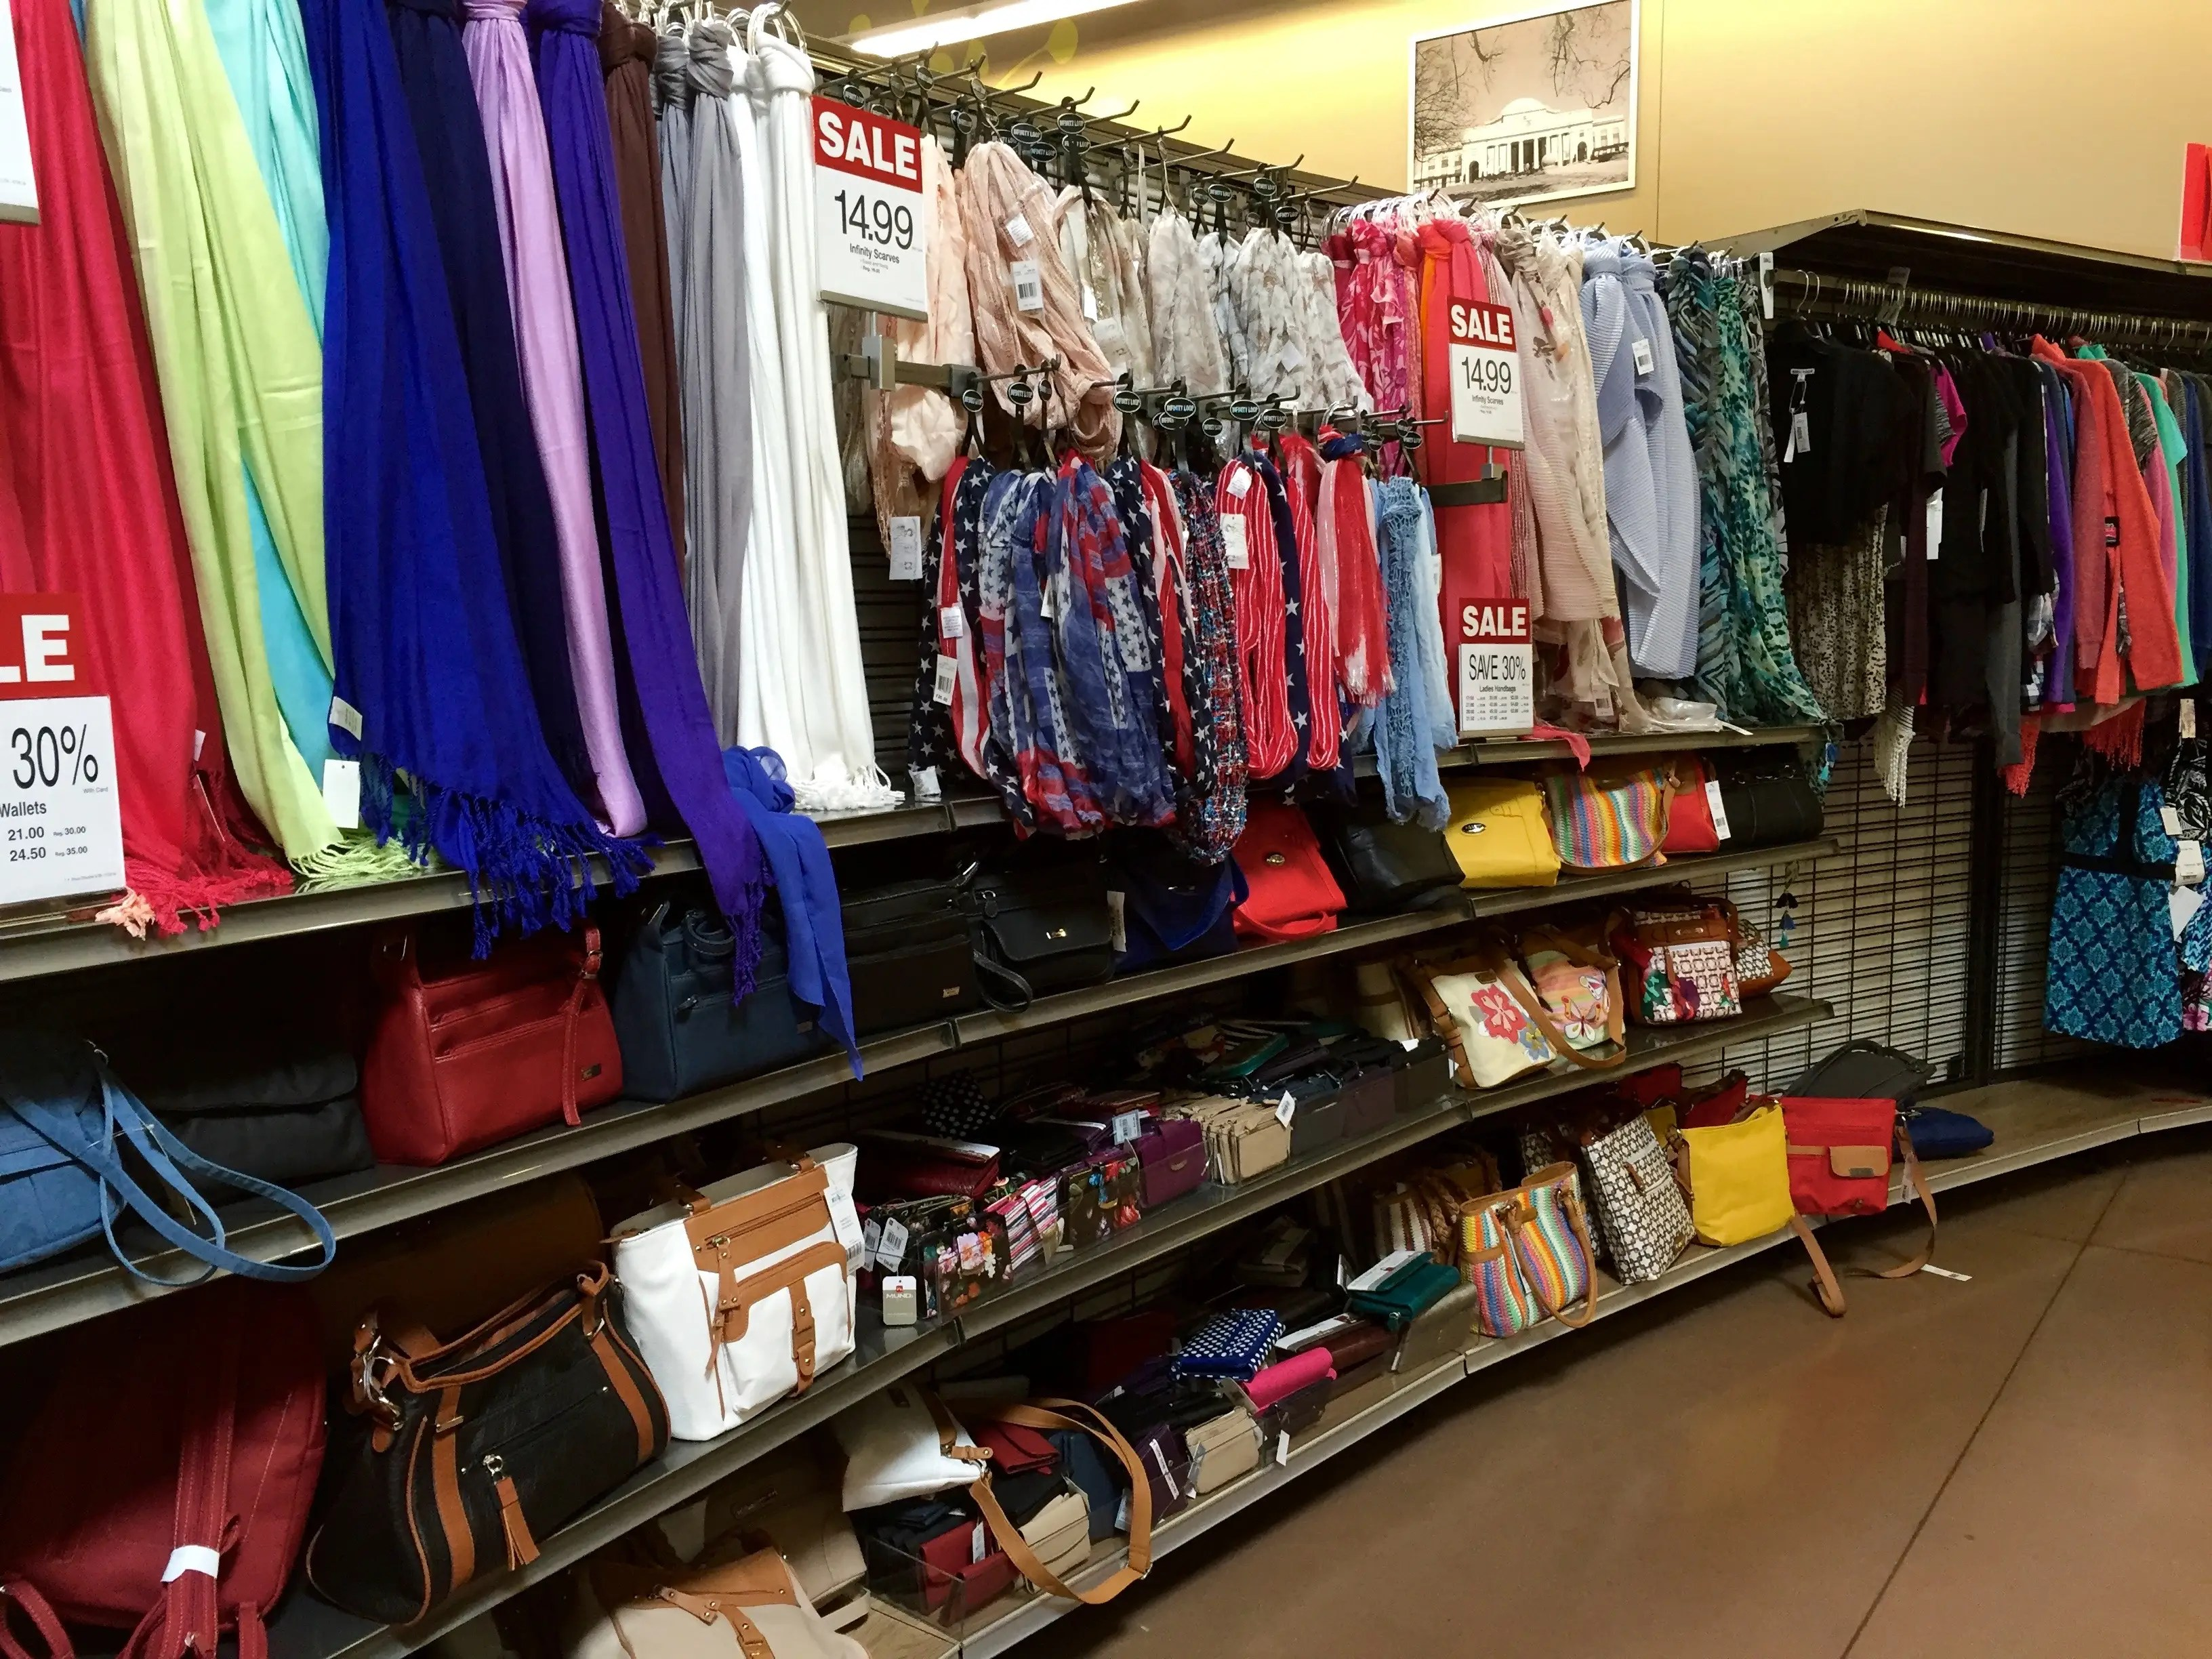 There's also an aisle devoted to accessories like scarves and handbags.